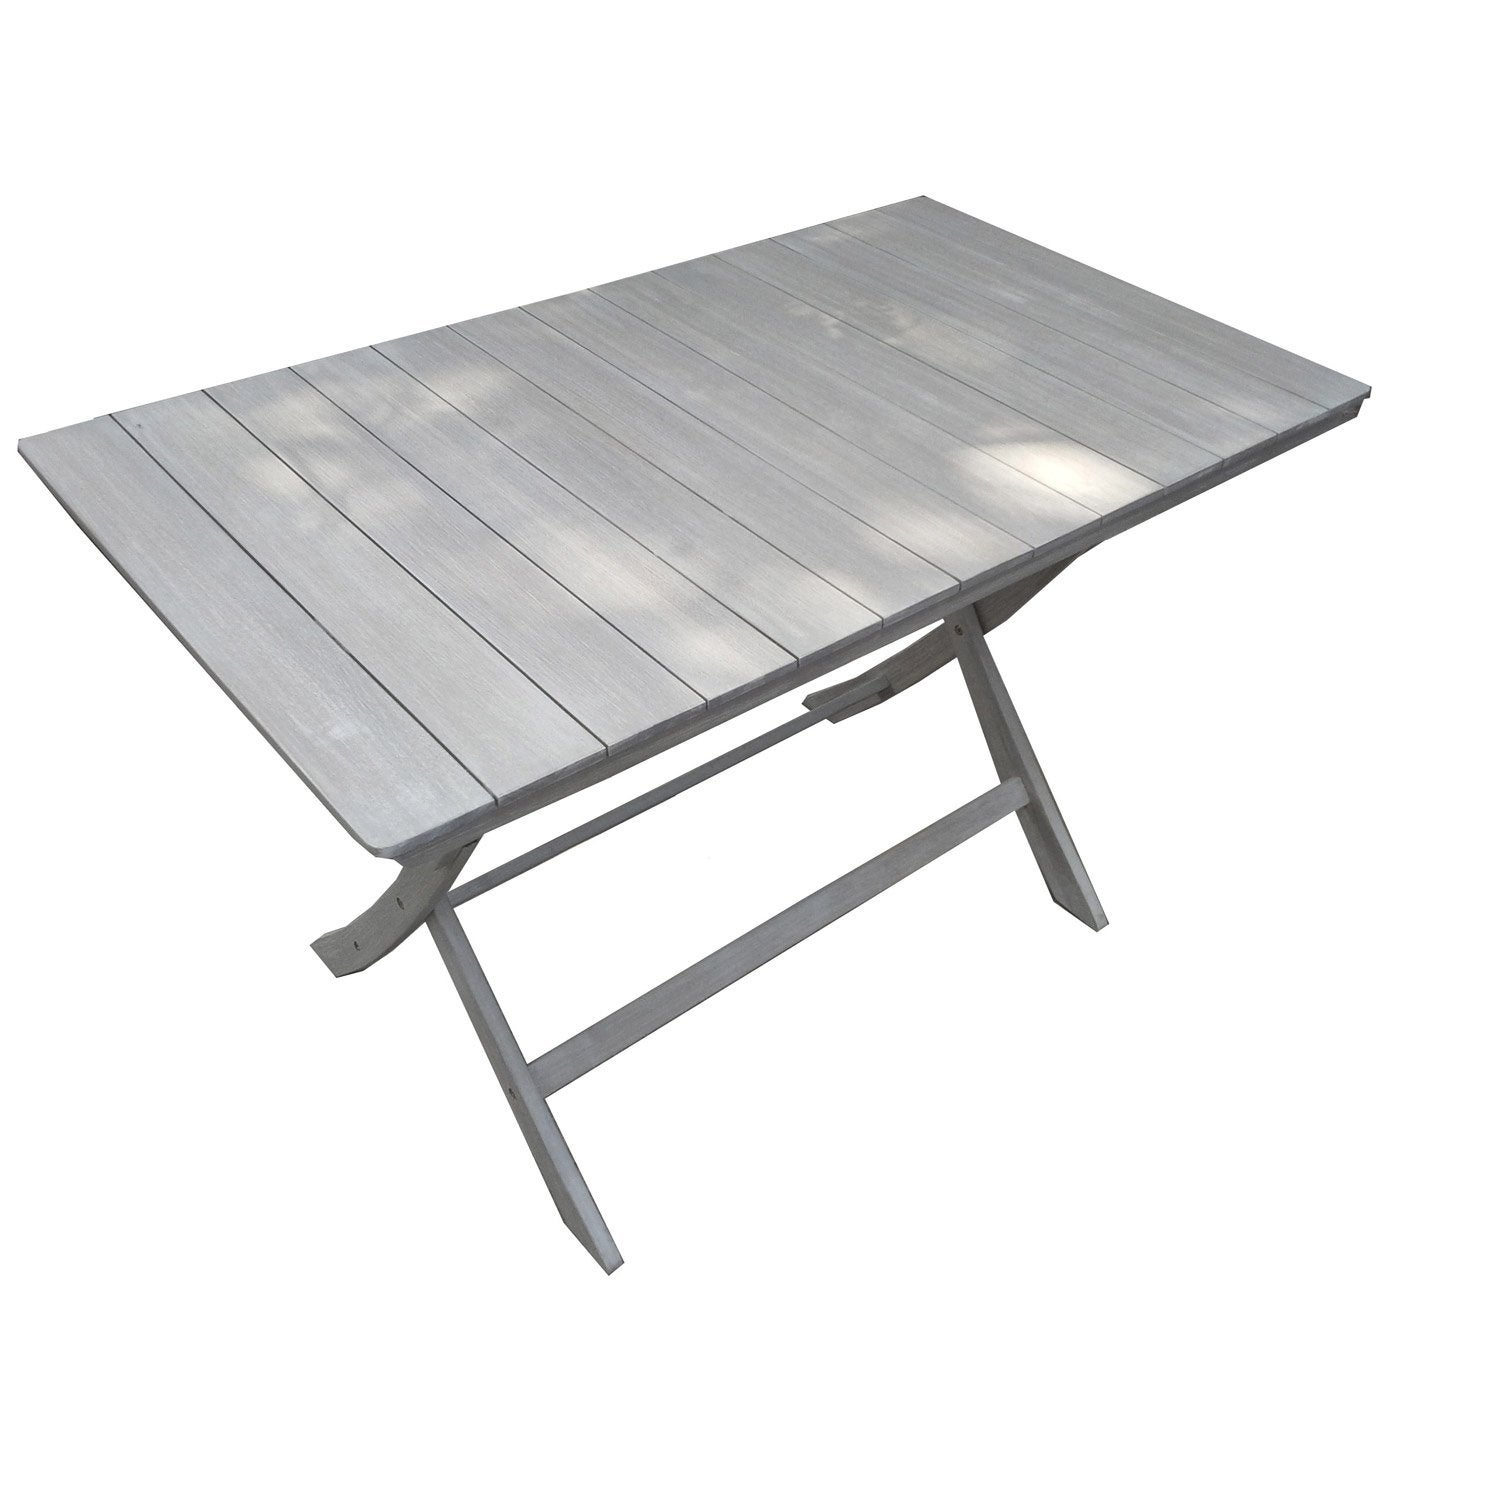 Table de jardin naterial portofino rectangulaire gris 4 for Table de salon pliable